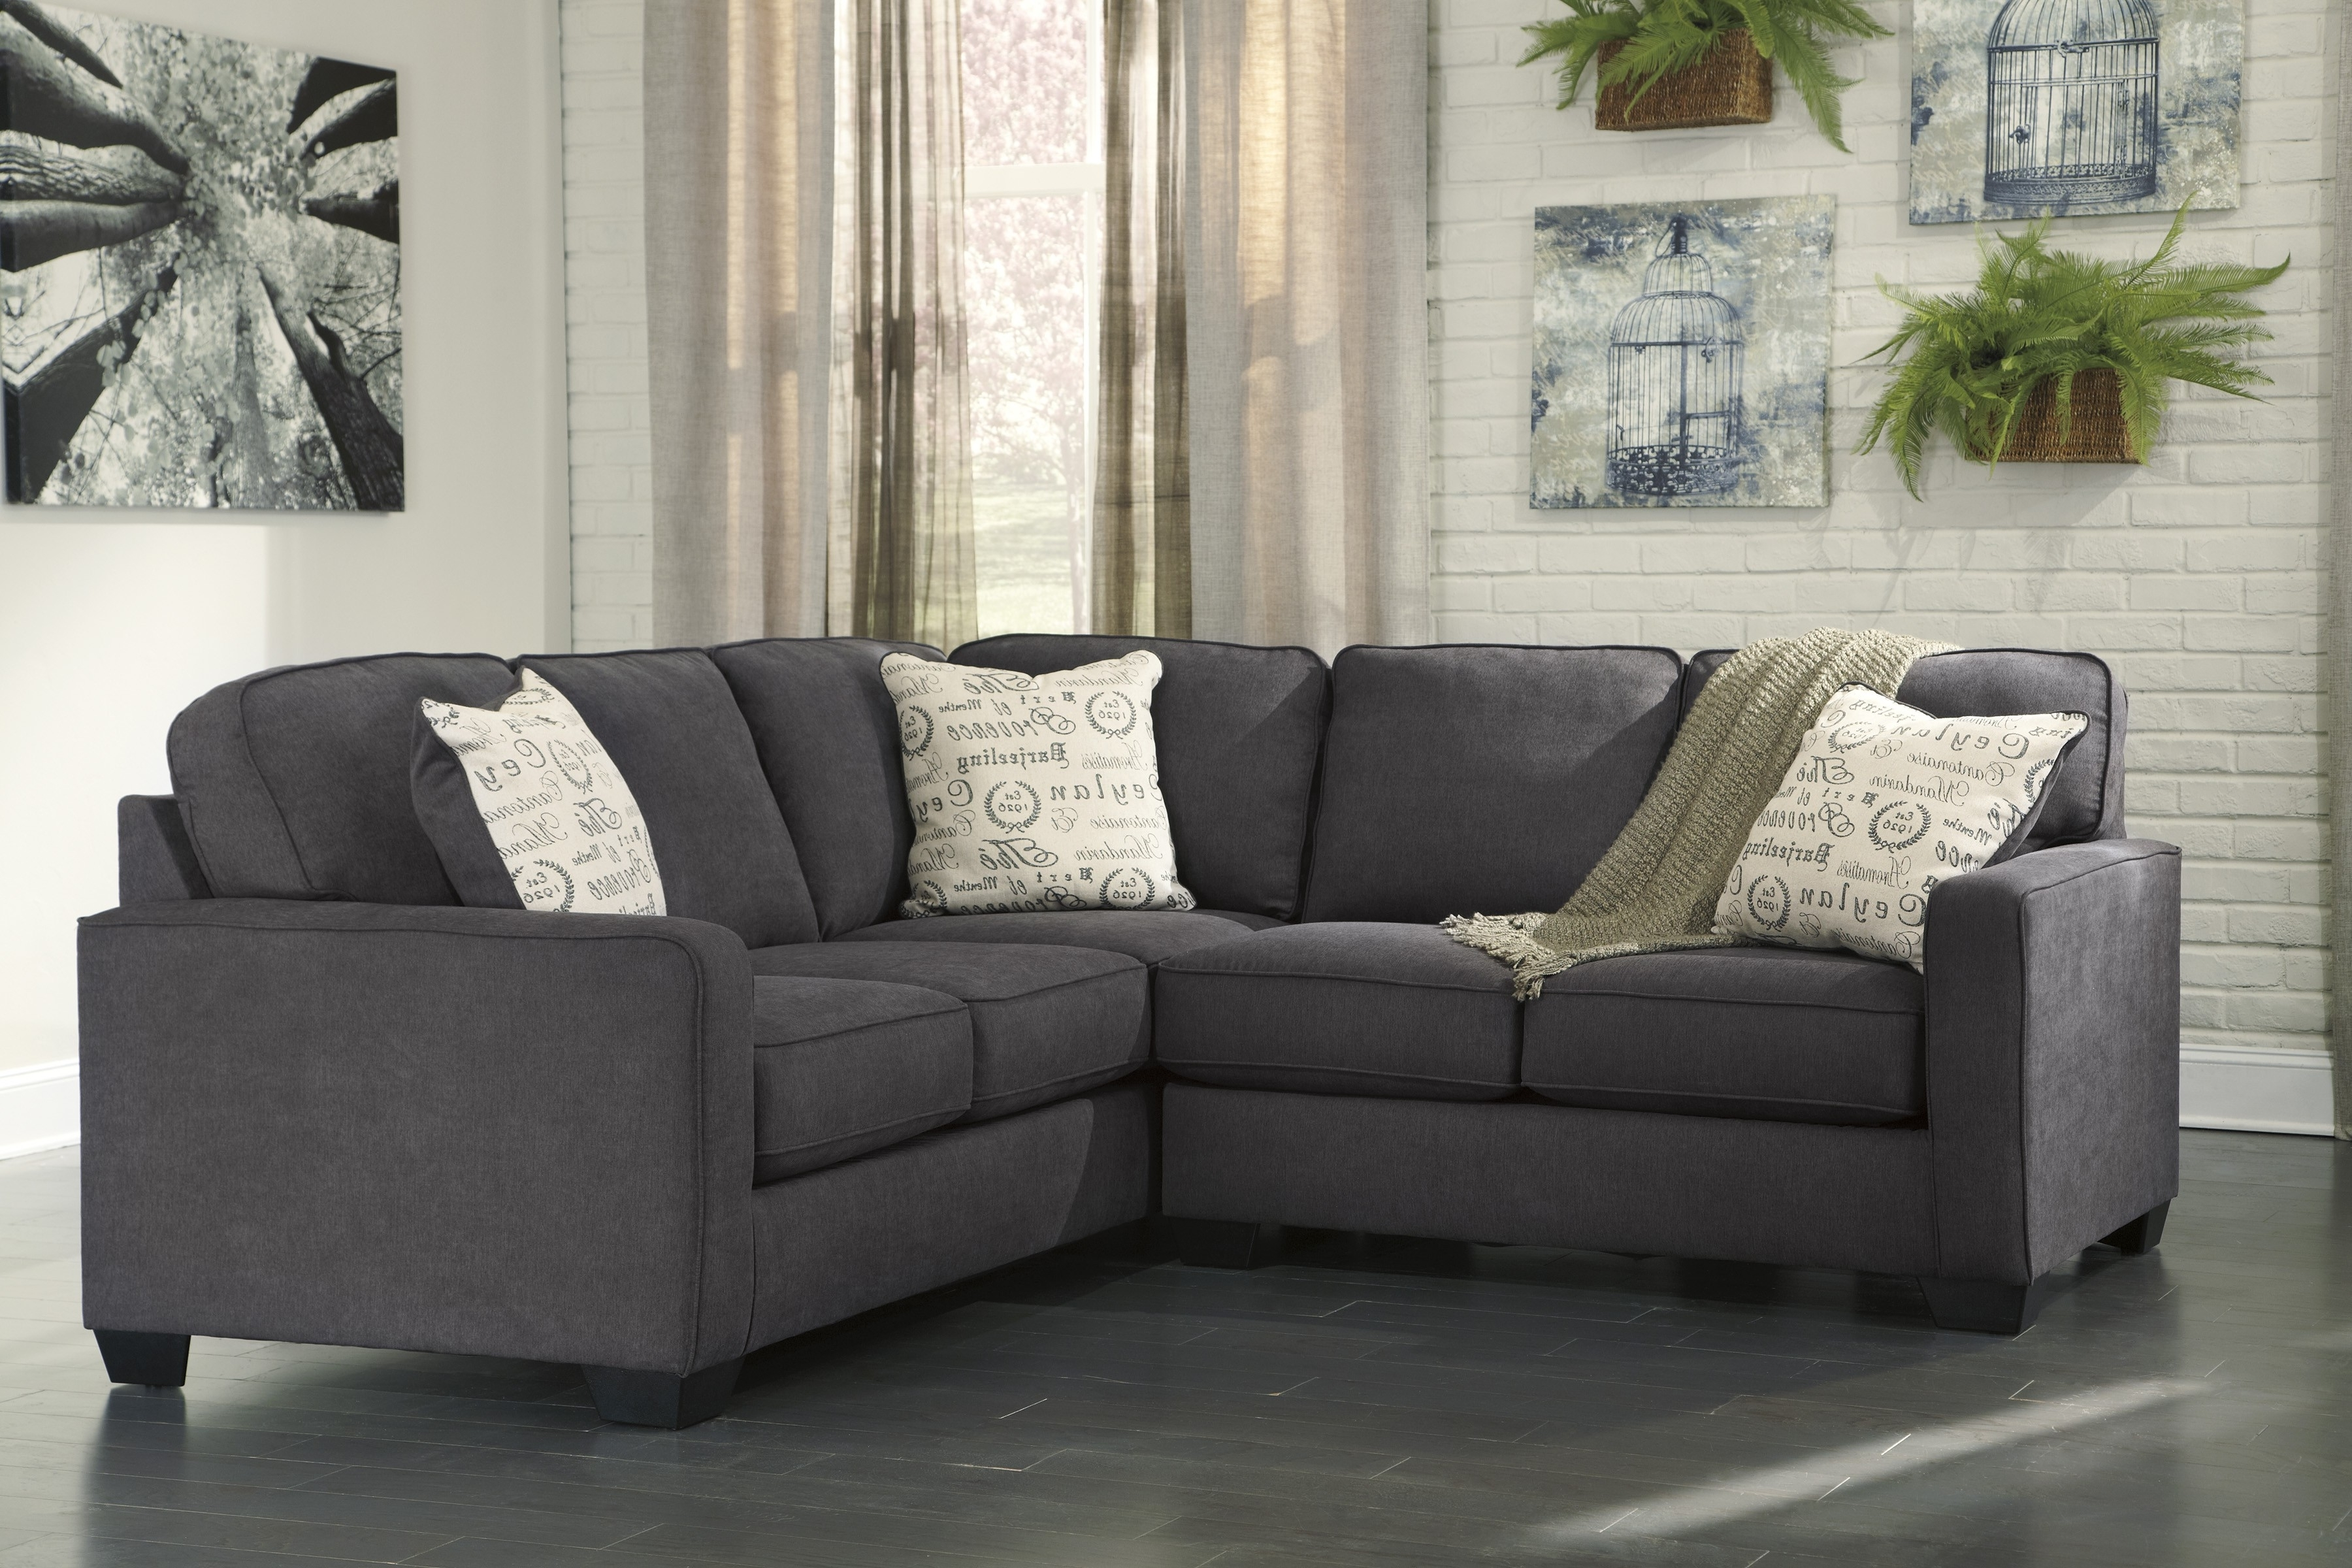 Sectional Sofas That Come In Pieces With Regard To Most Popular Alenya Charcoal 2 Piece Sectional Sofa For $ (View 12 of 20)